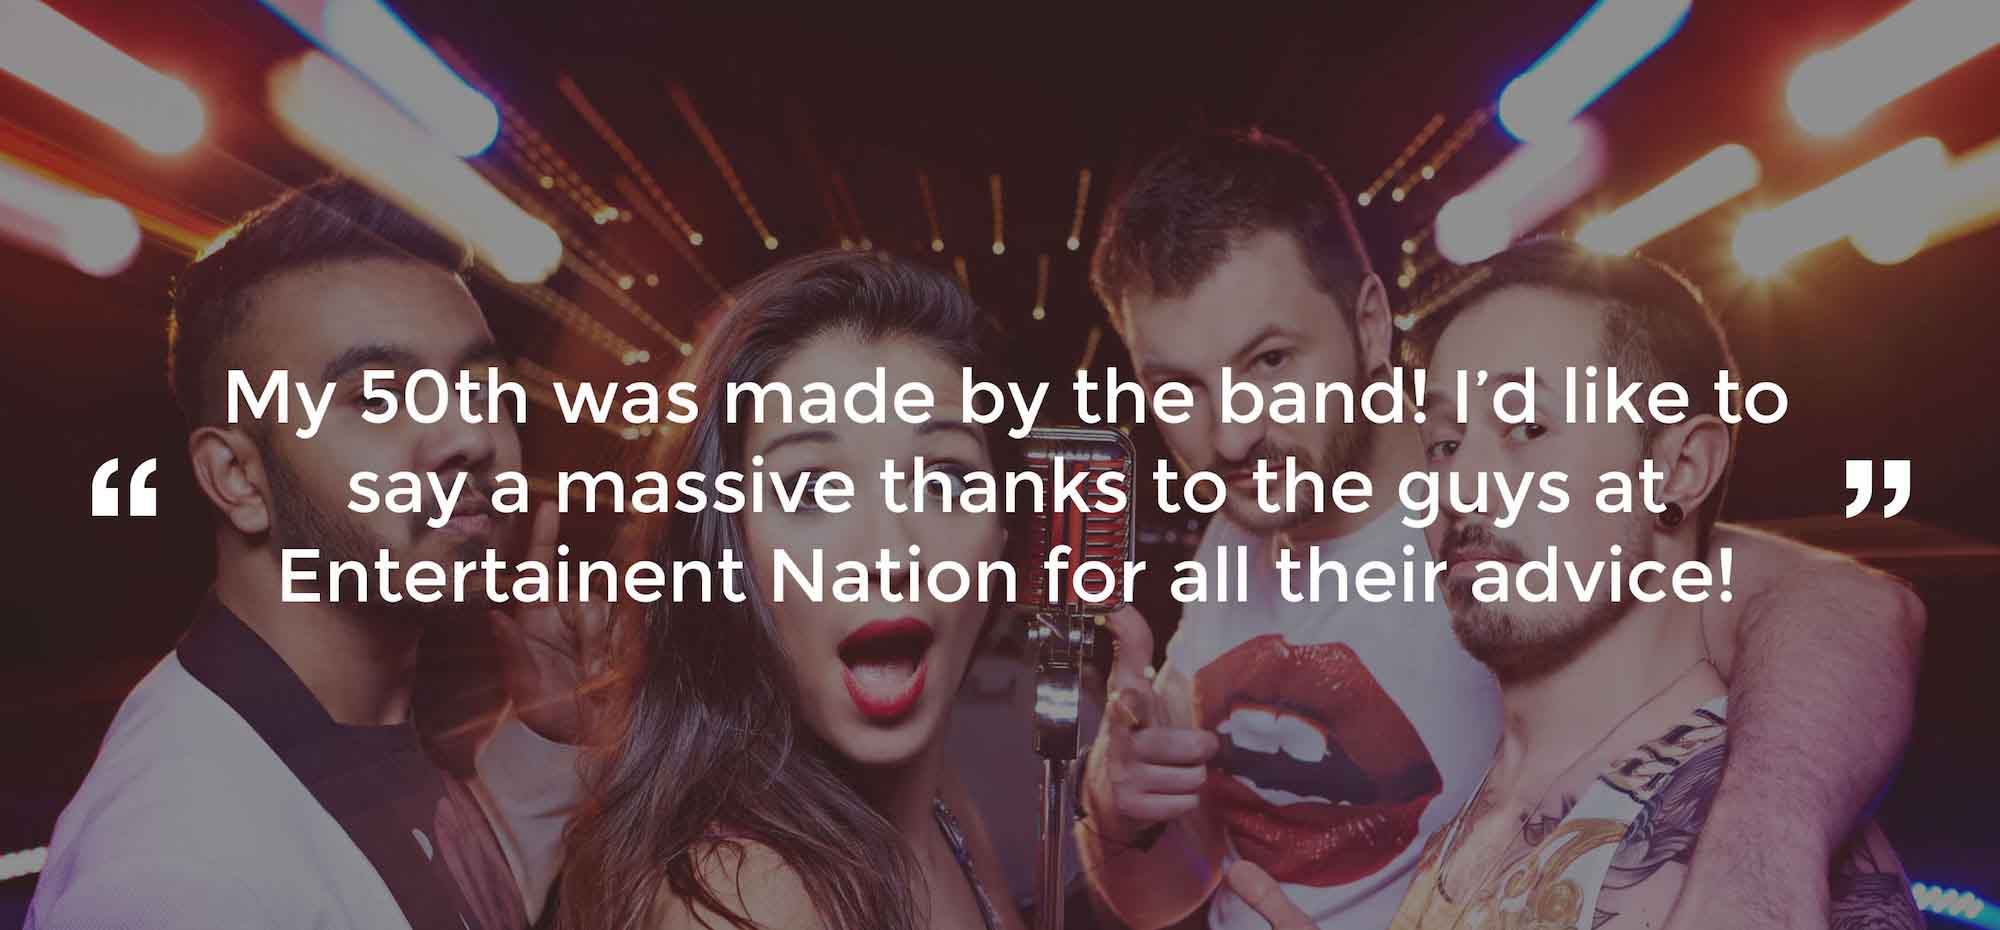 Client Review of a Party Band Derbyshire